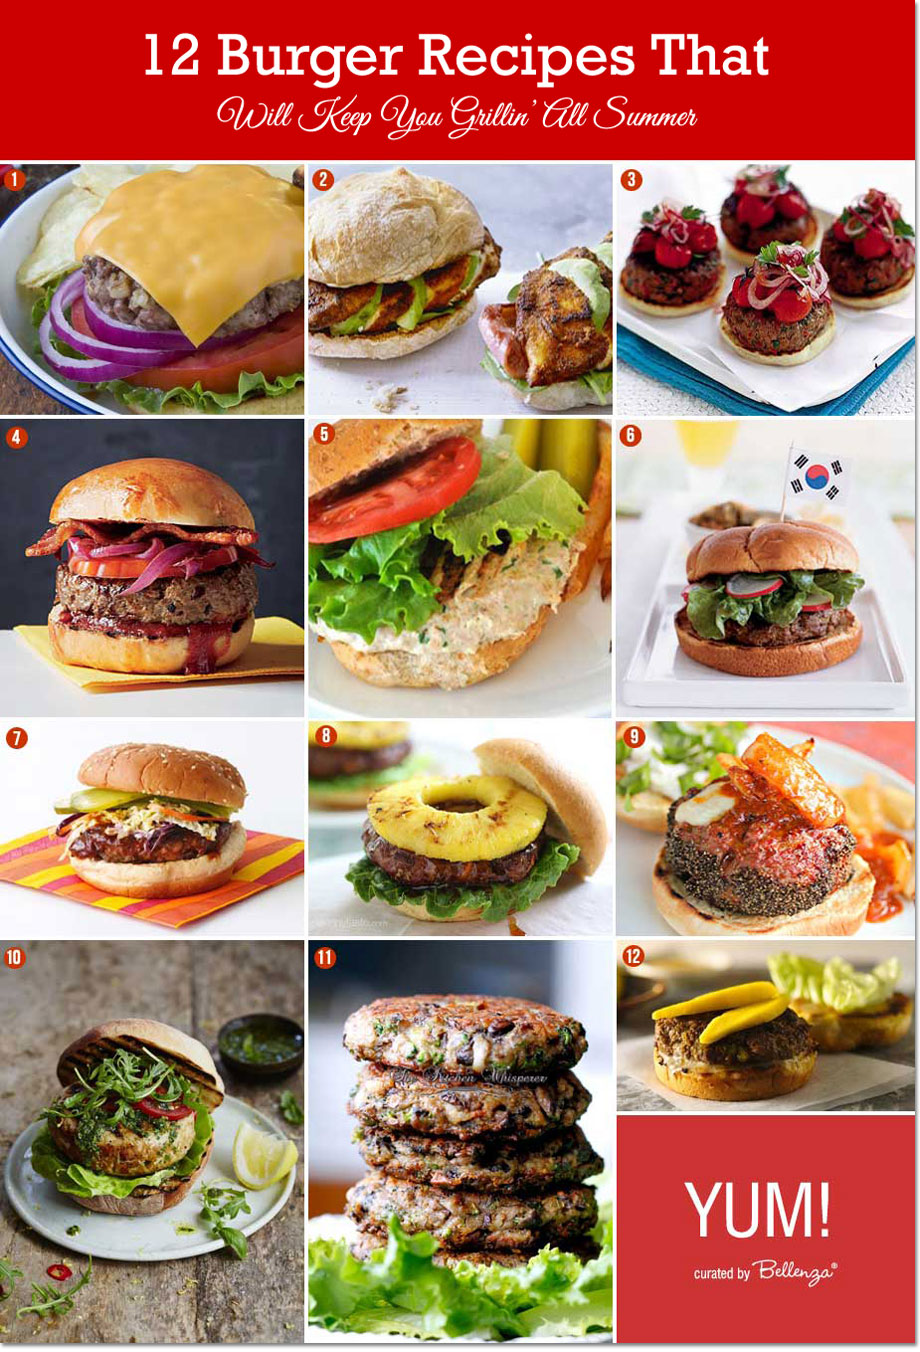 Burger Recipes for Summer Grilling! #summerburgers #burgerrecipes